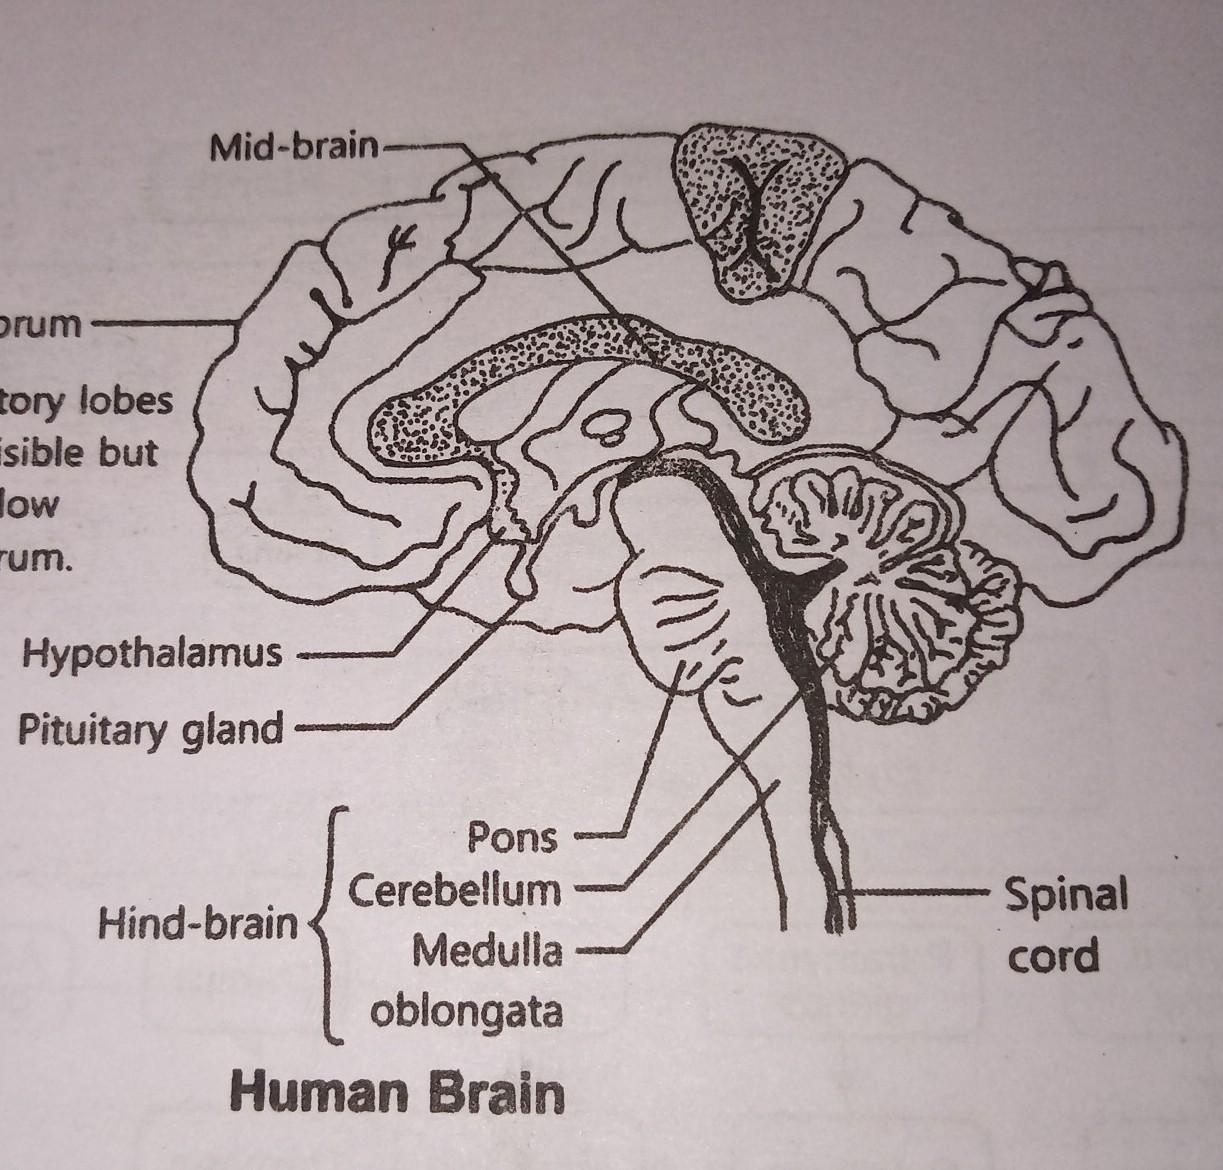 Draw A Well Labelled Diagram Of The Human Brain And Mention The Functions Of Its Various Parts Brainly In